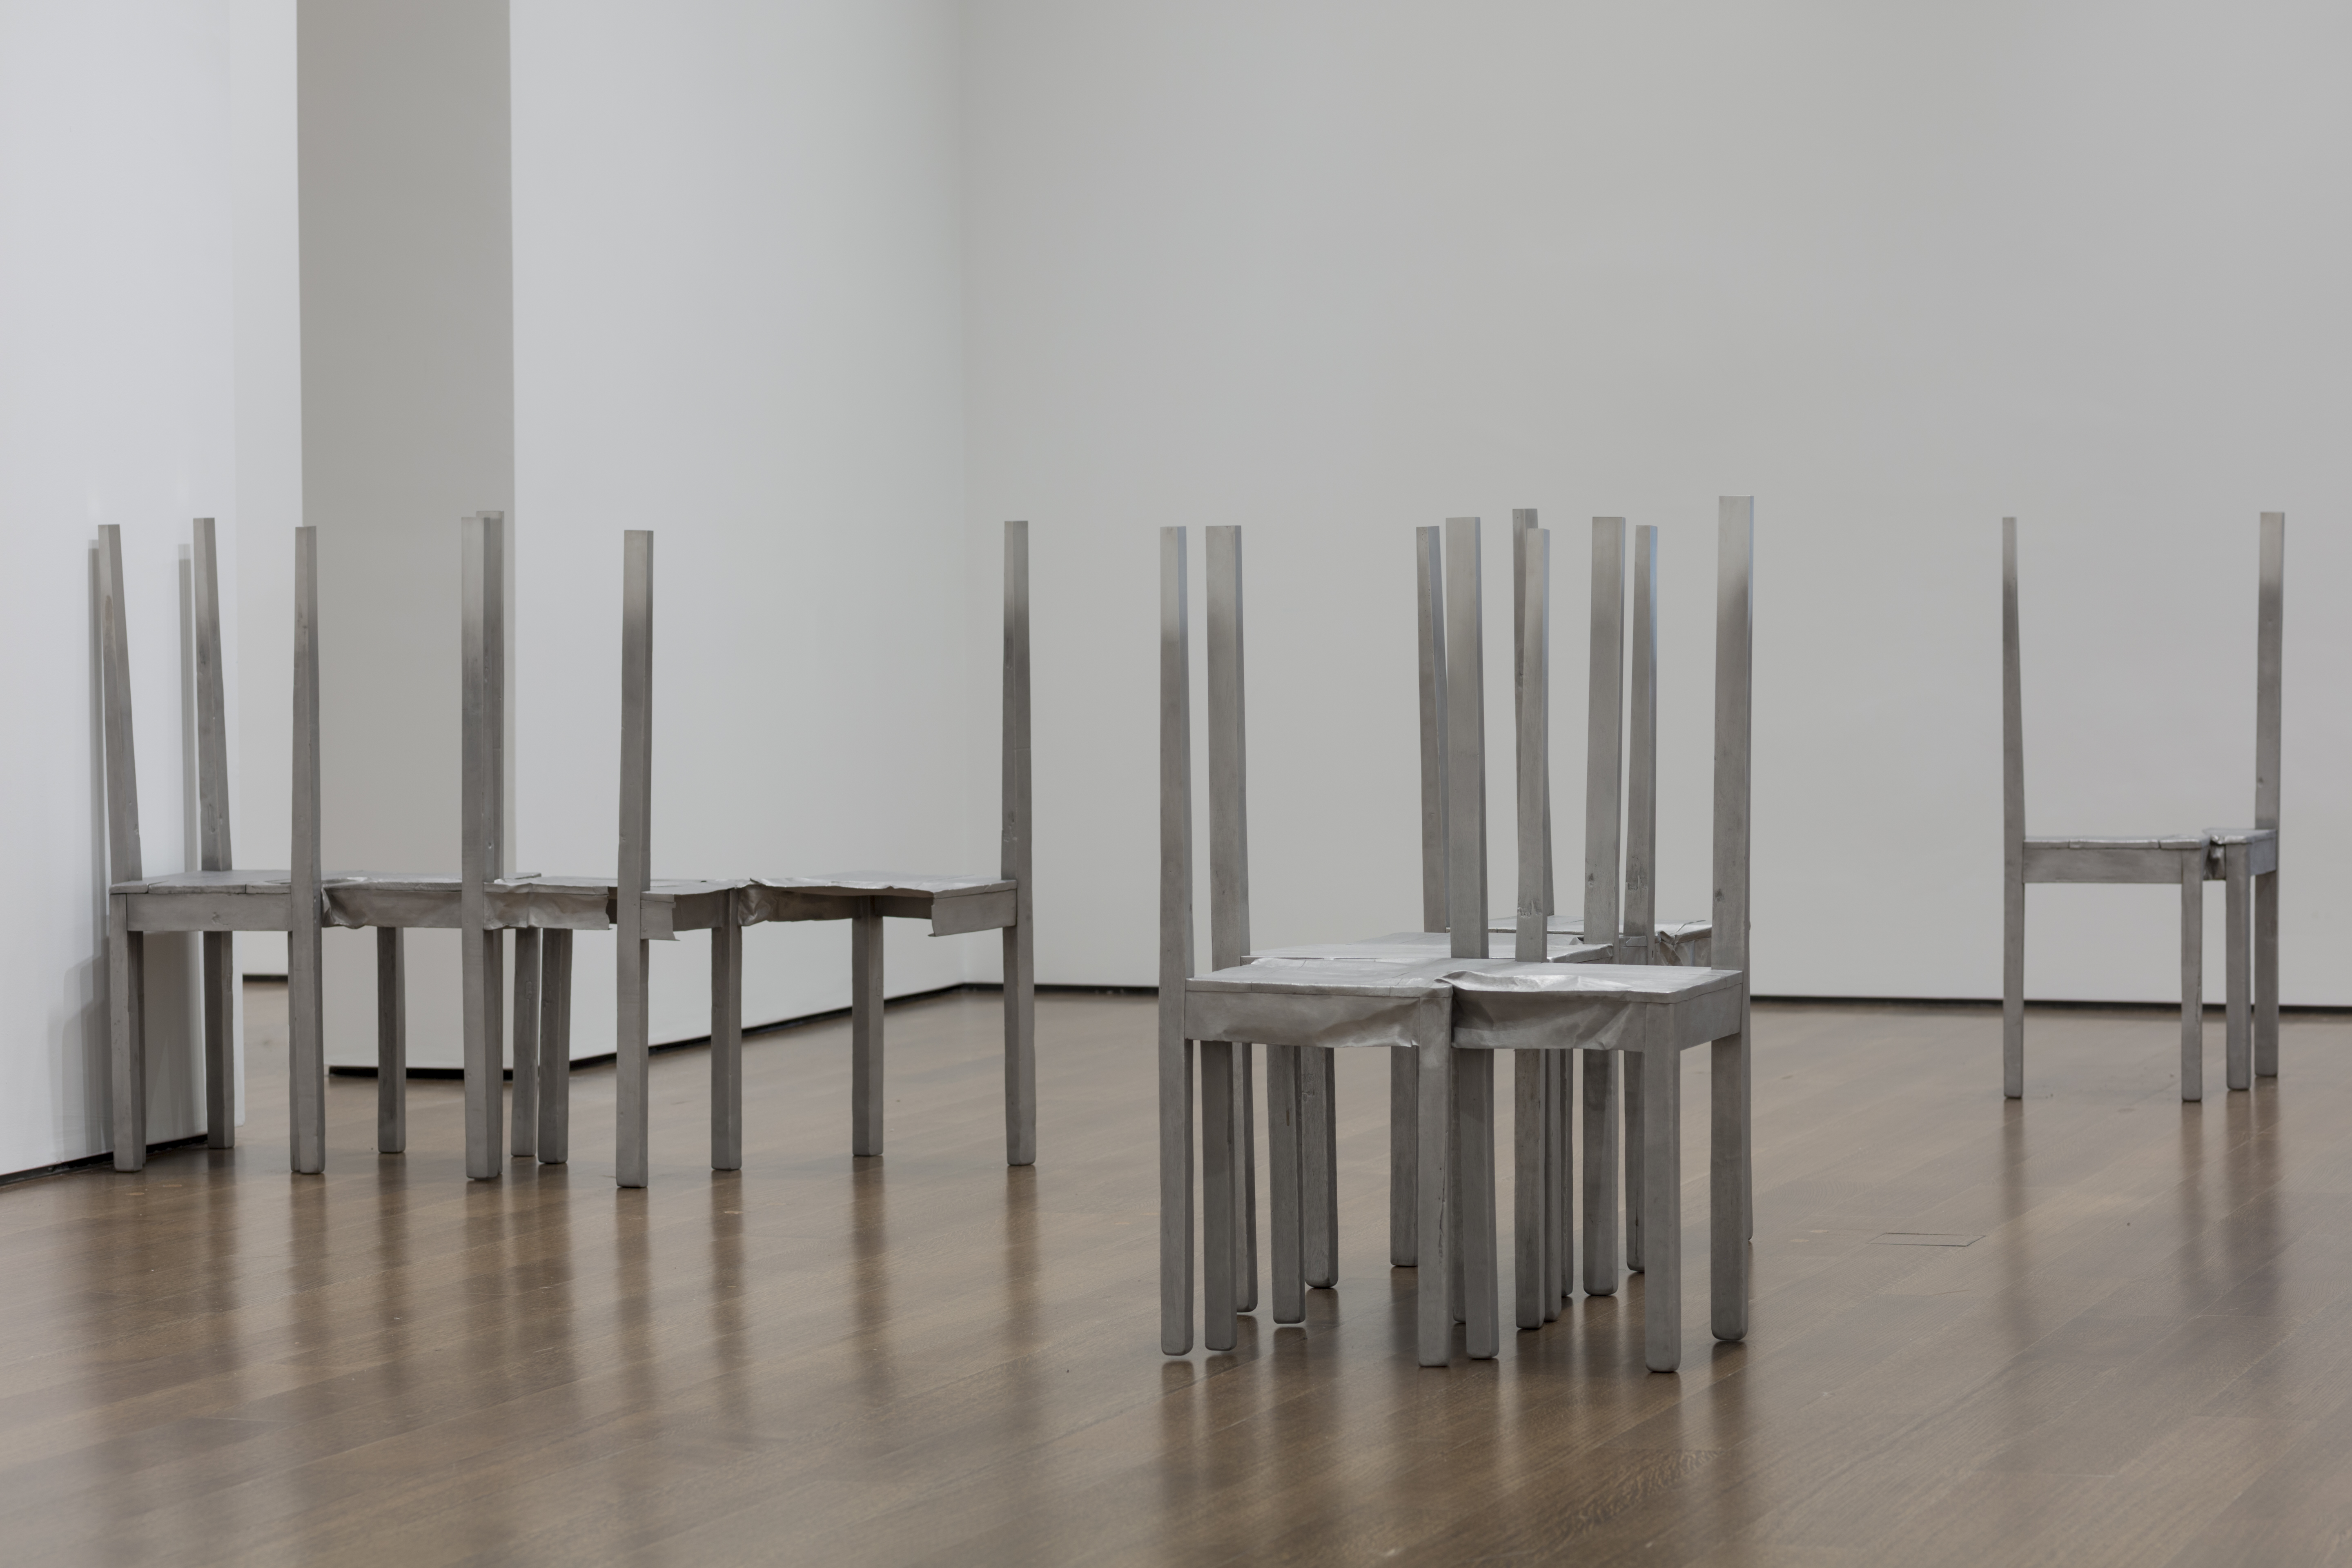 This photograph shows three groups of stainless-steel chairs, crumpled, ripped, and/or merged together. These sculptures are installed in a gallery with white walls and a wood floor.